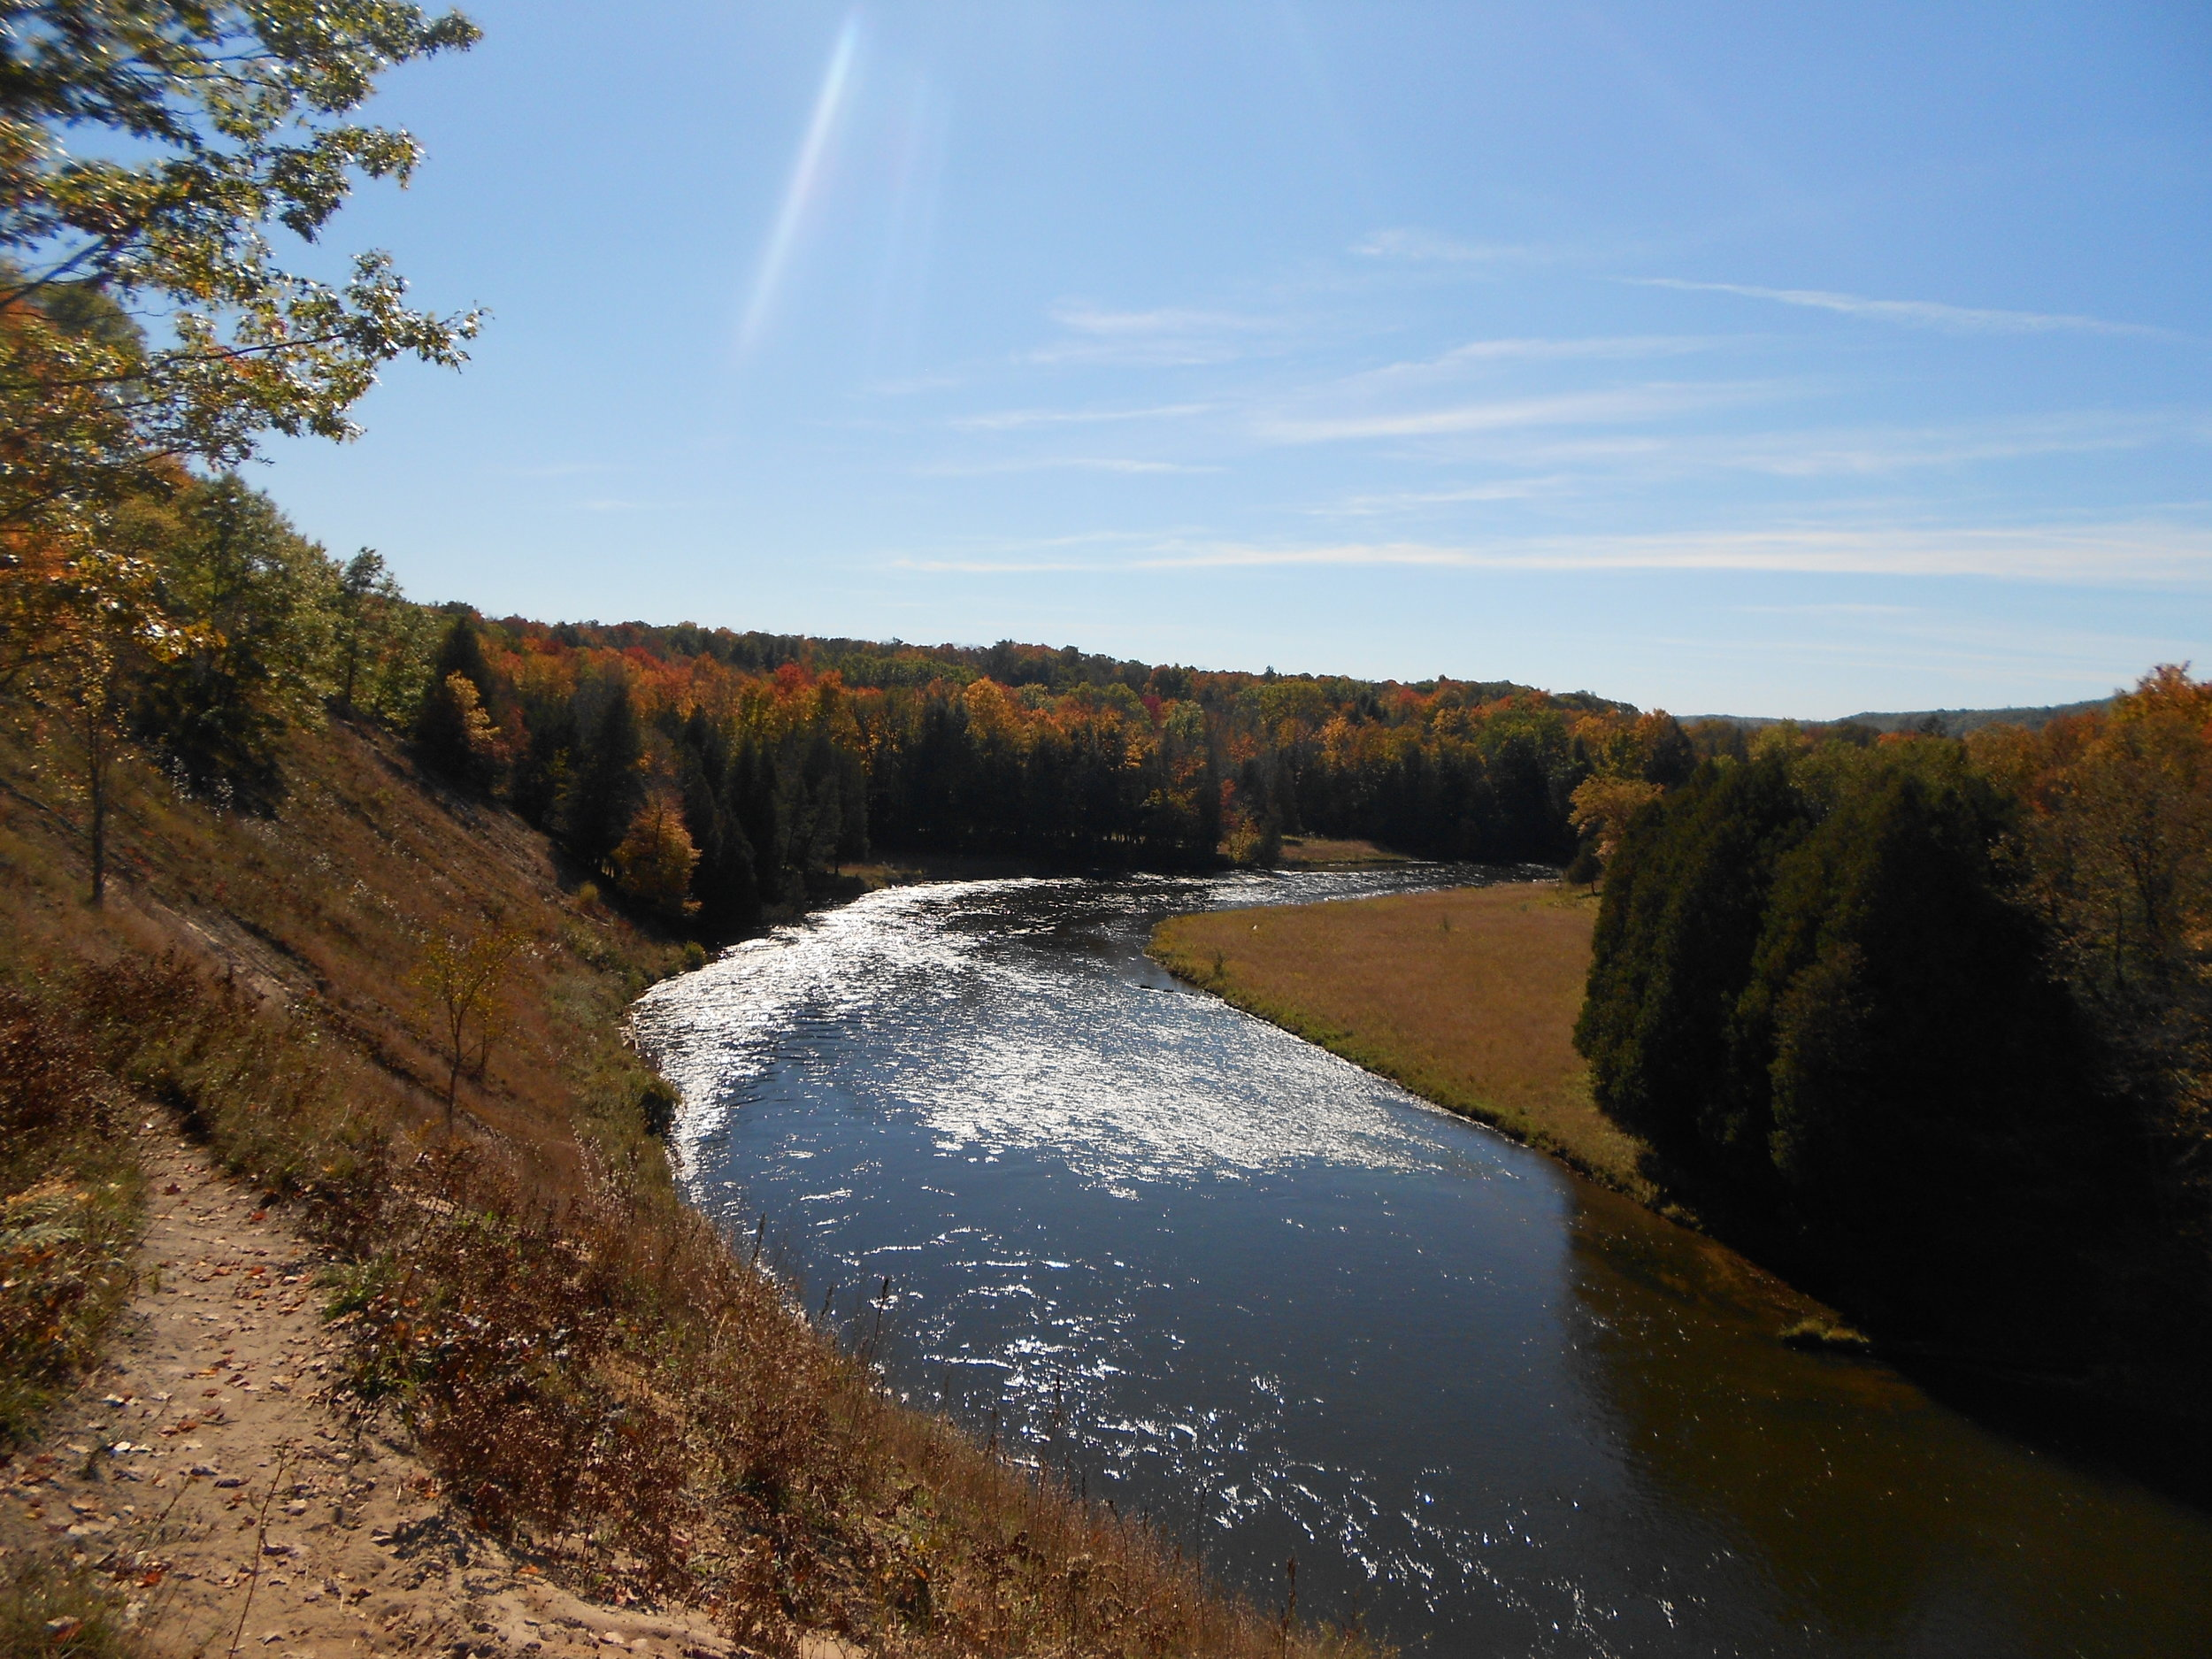 Manistee River Trail, Manistee National Forest   Among one of the most popular trails in the Manistee, this 24 miler is split by the Manistee River half and a small stretch of the North Country Trail, a trail that starts up in the New York/Pennsylvania border and ends all way up in North Dakota. Don't worry, we'll only ask a few miles of you.